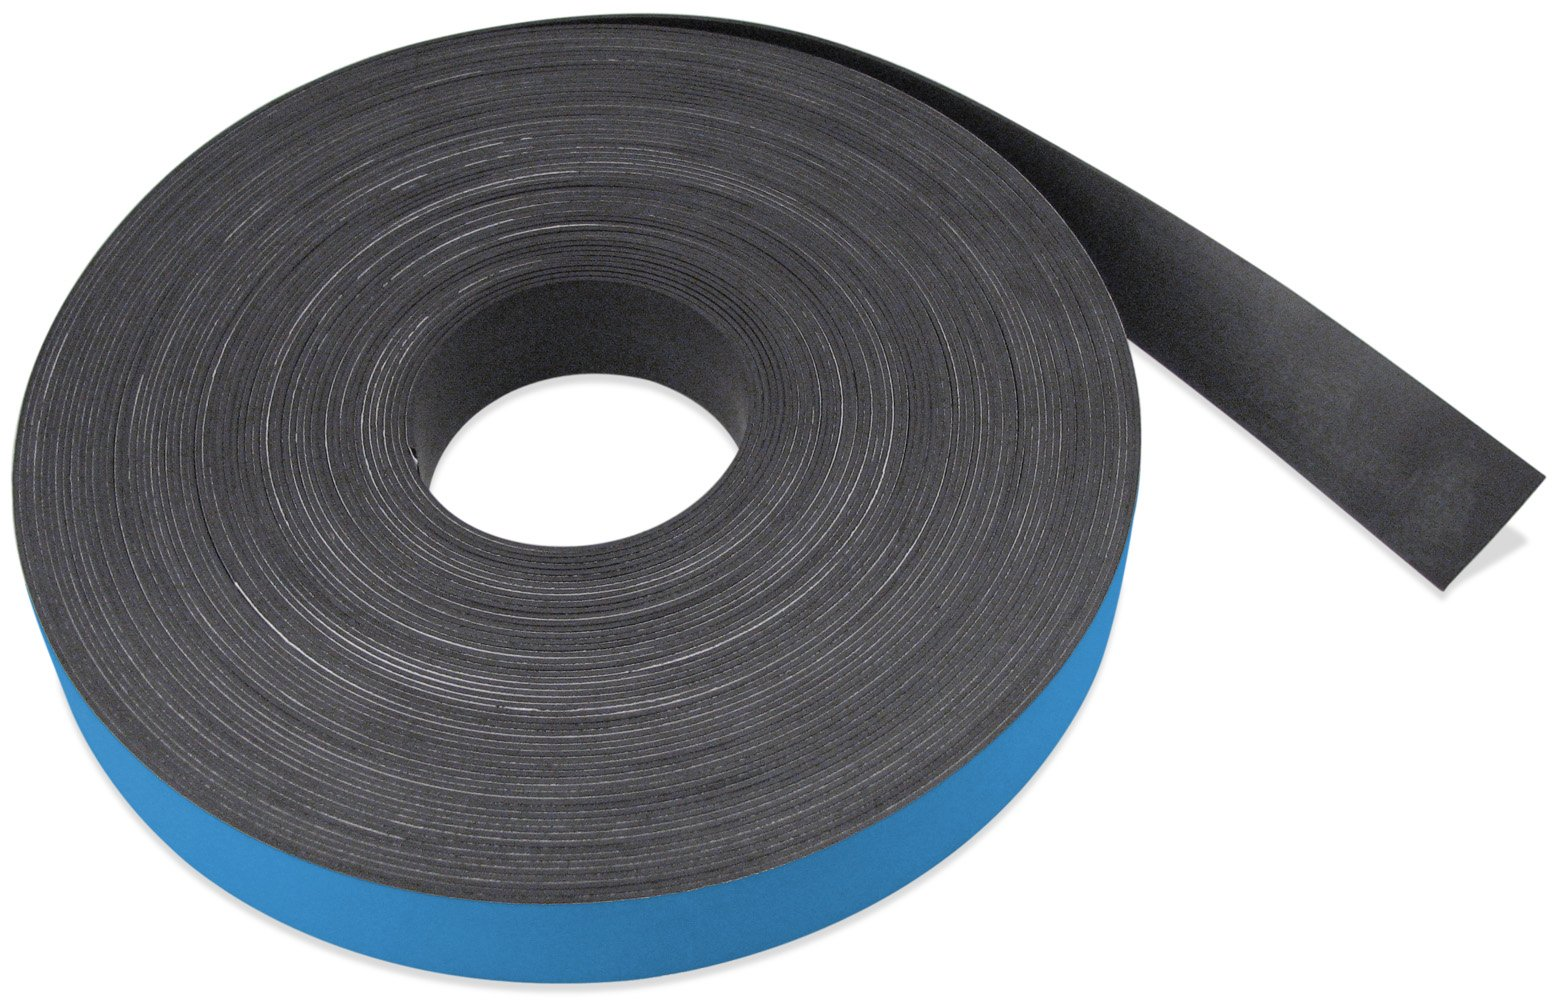 Flexible Magnet Strip with Blue Vinyl Coating, 1/32'' Thick, 3'' Height, 50 Feet, 1 Roll